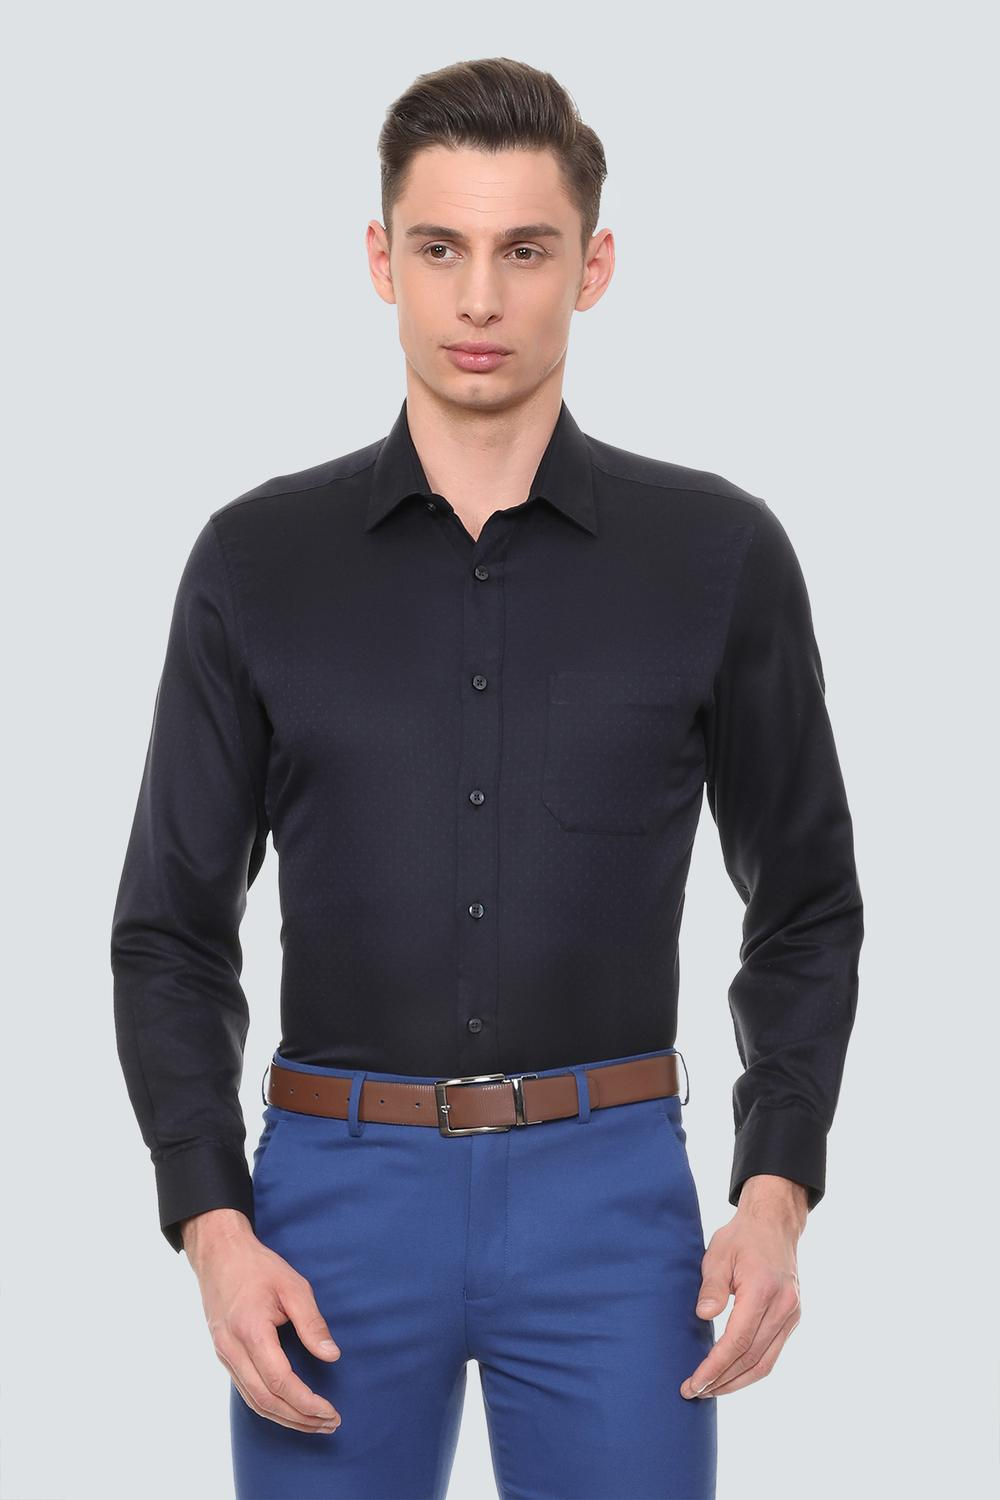 ca8cac6704 Louis Philippe Shirts, Louis Philippe Black Shirt for Men at Louisphilippe .com